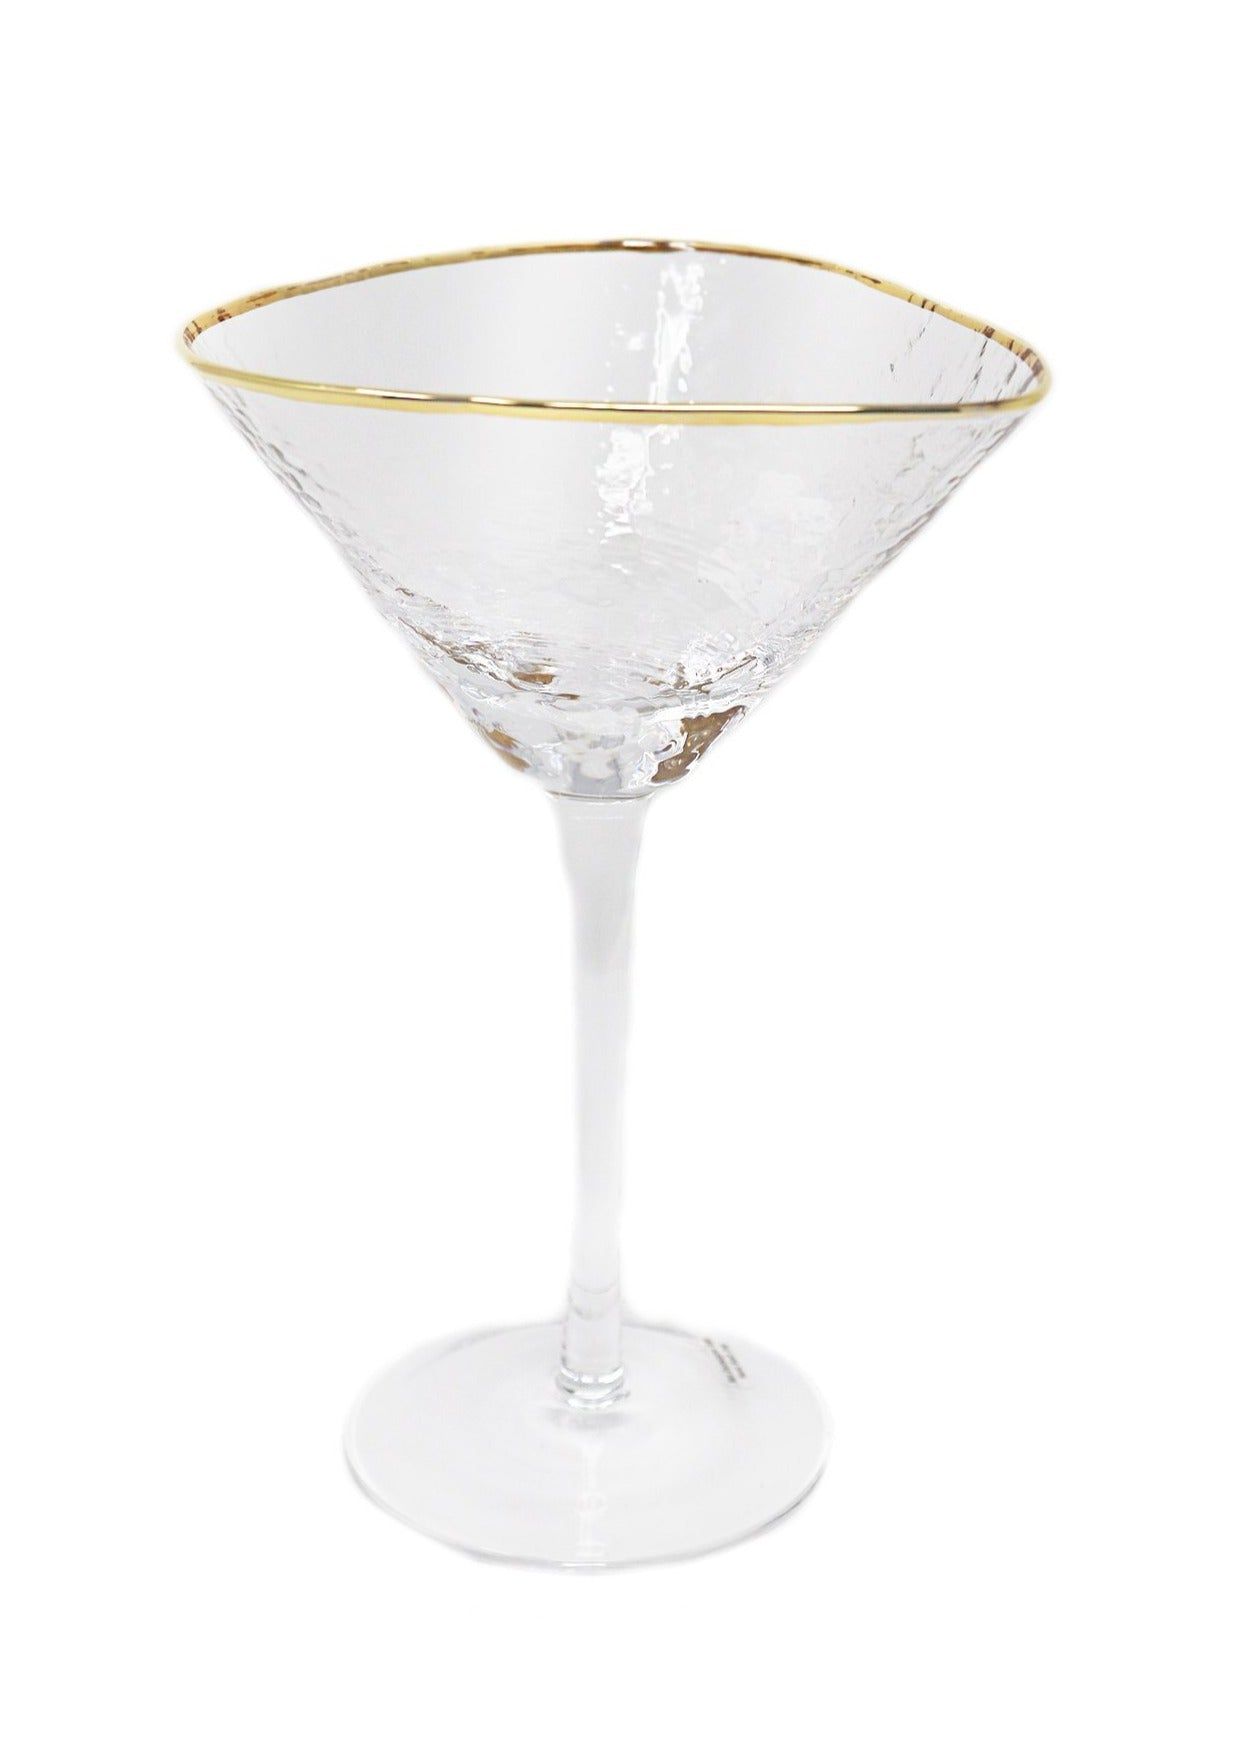 Aperitivo Triangular Martini Glass - Gabrielle's Biloxi